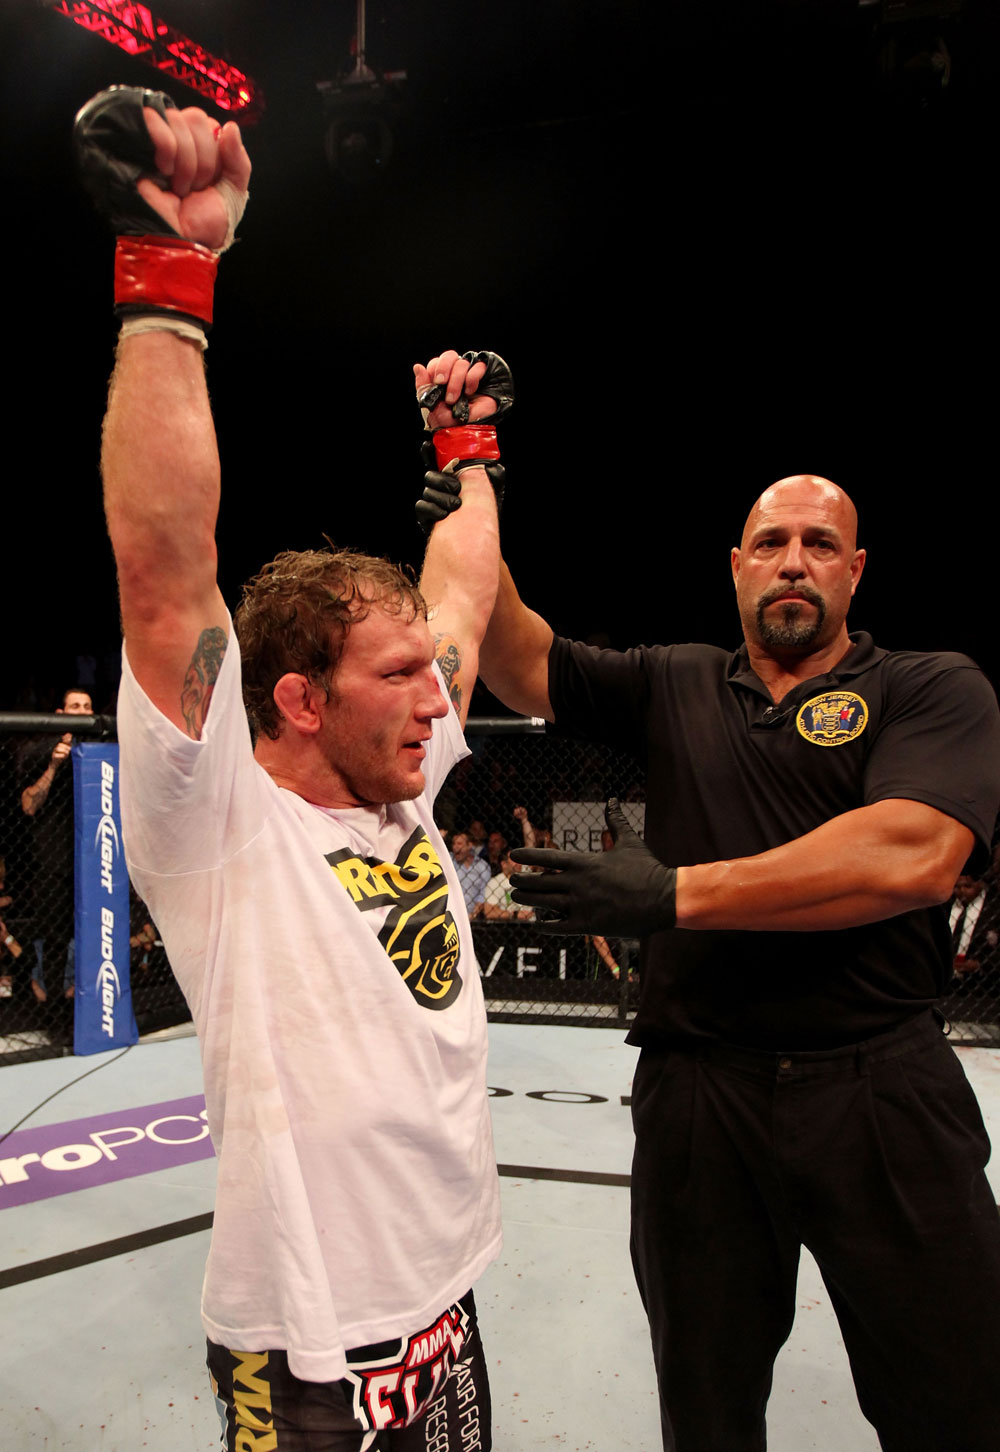 ATLANTIC CITY, NJ - JUNE 22:  Gray Maynard (L) celebrates his win by split decision over Clay Guida (not pictured) in the main event lightweight bout during UFC on FX 4 at Revel Casino on June 22, 2012 in Atlantic City, New Jersey.  (Photo by Nick Laham/Zuffa LLC/Zuffa LLC)